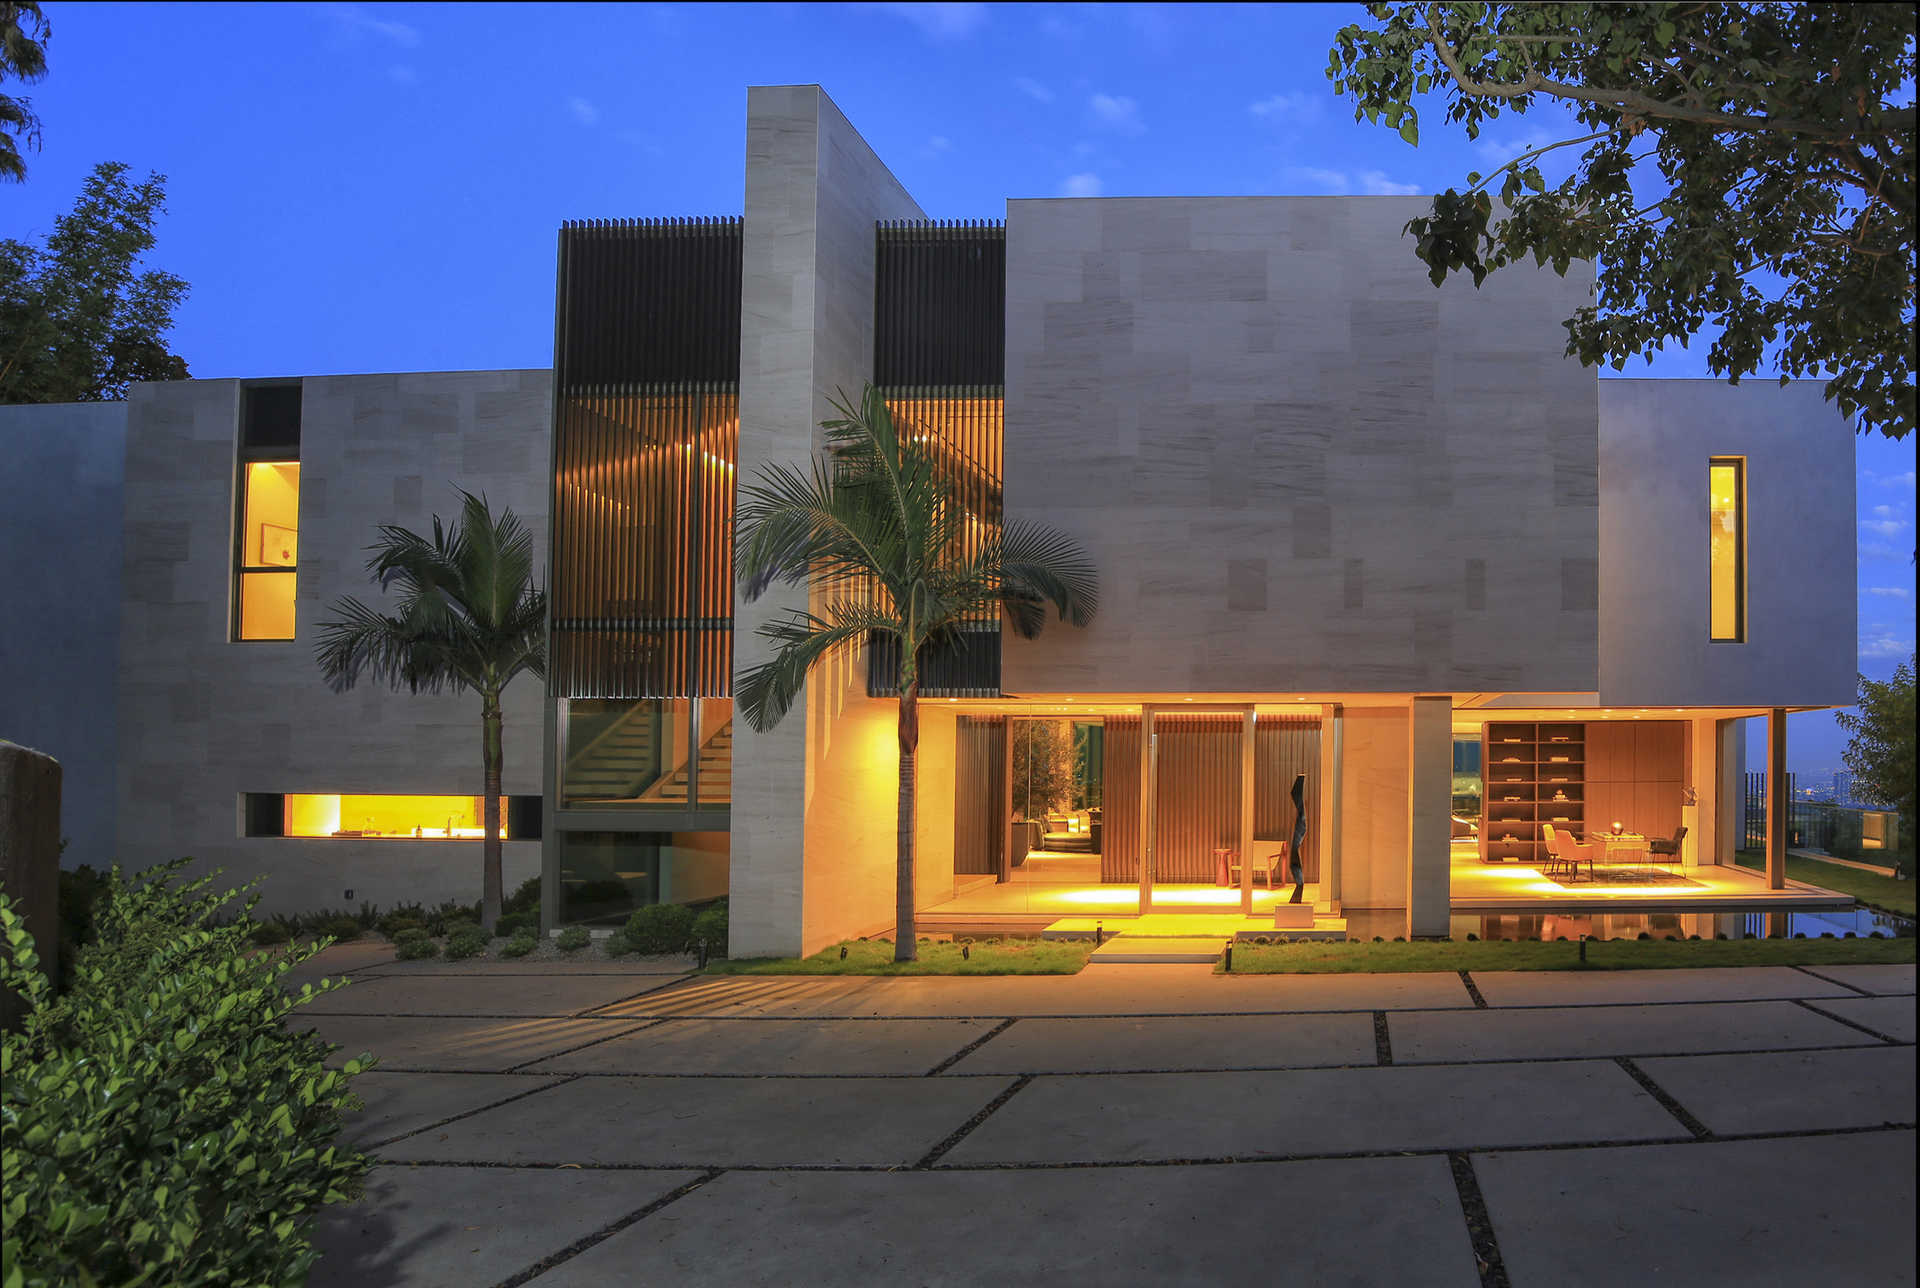 Bel Air S Most Expensive Home Sales Last Year Begin With Jay Z And Beyonce Los Angeles Times